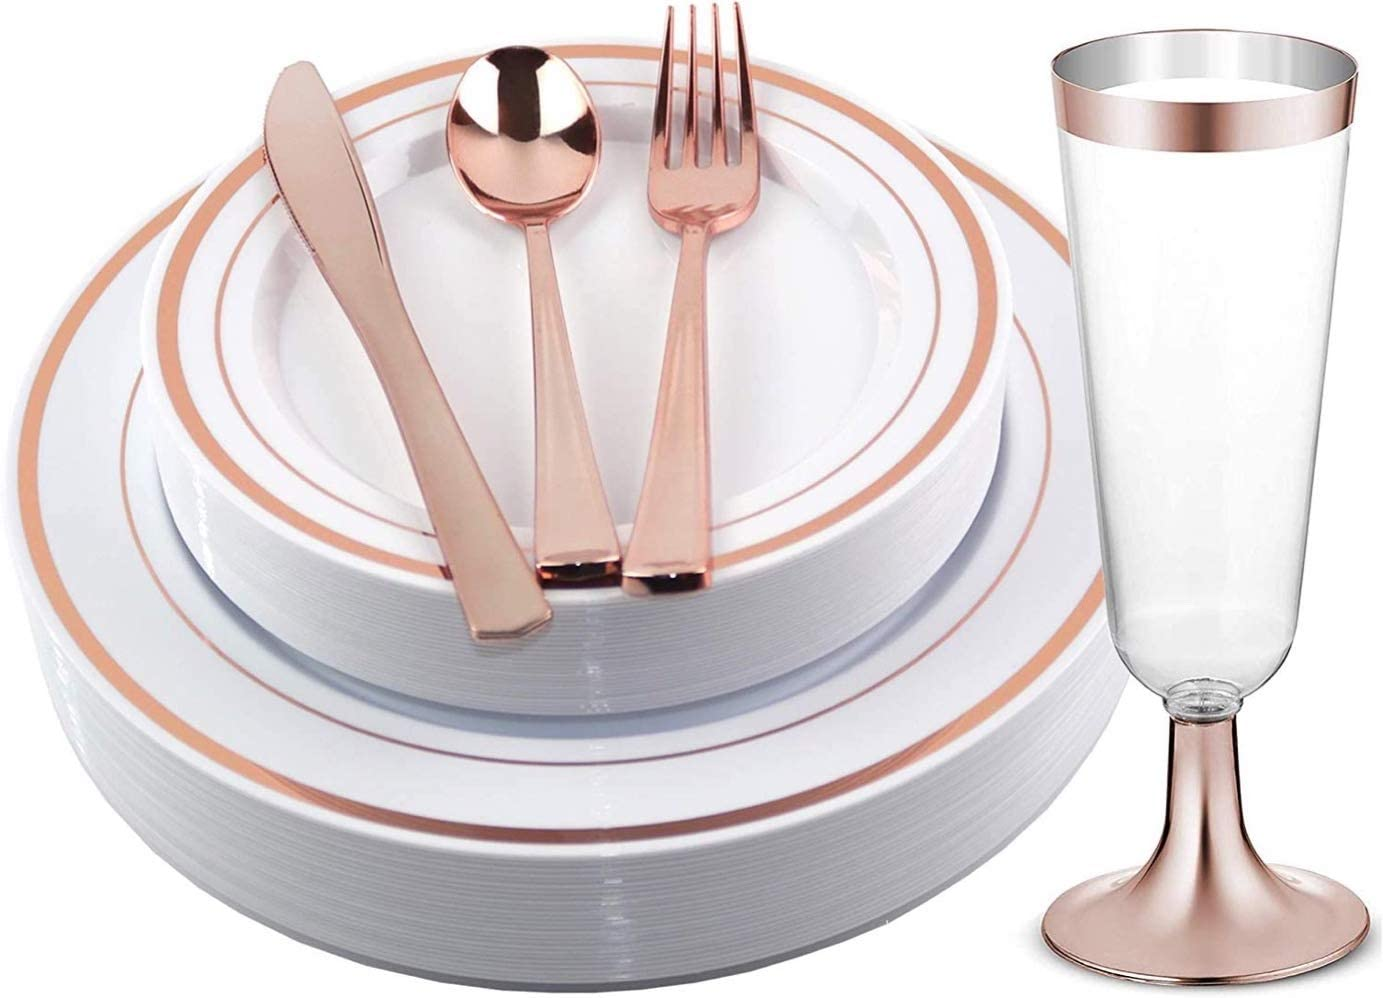 Facciamo Festa Rose Gold Plastic Spring new work one after another Plates Cutlery with Cups Su and OFFicial shop